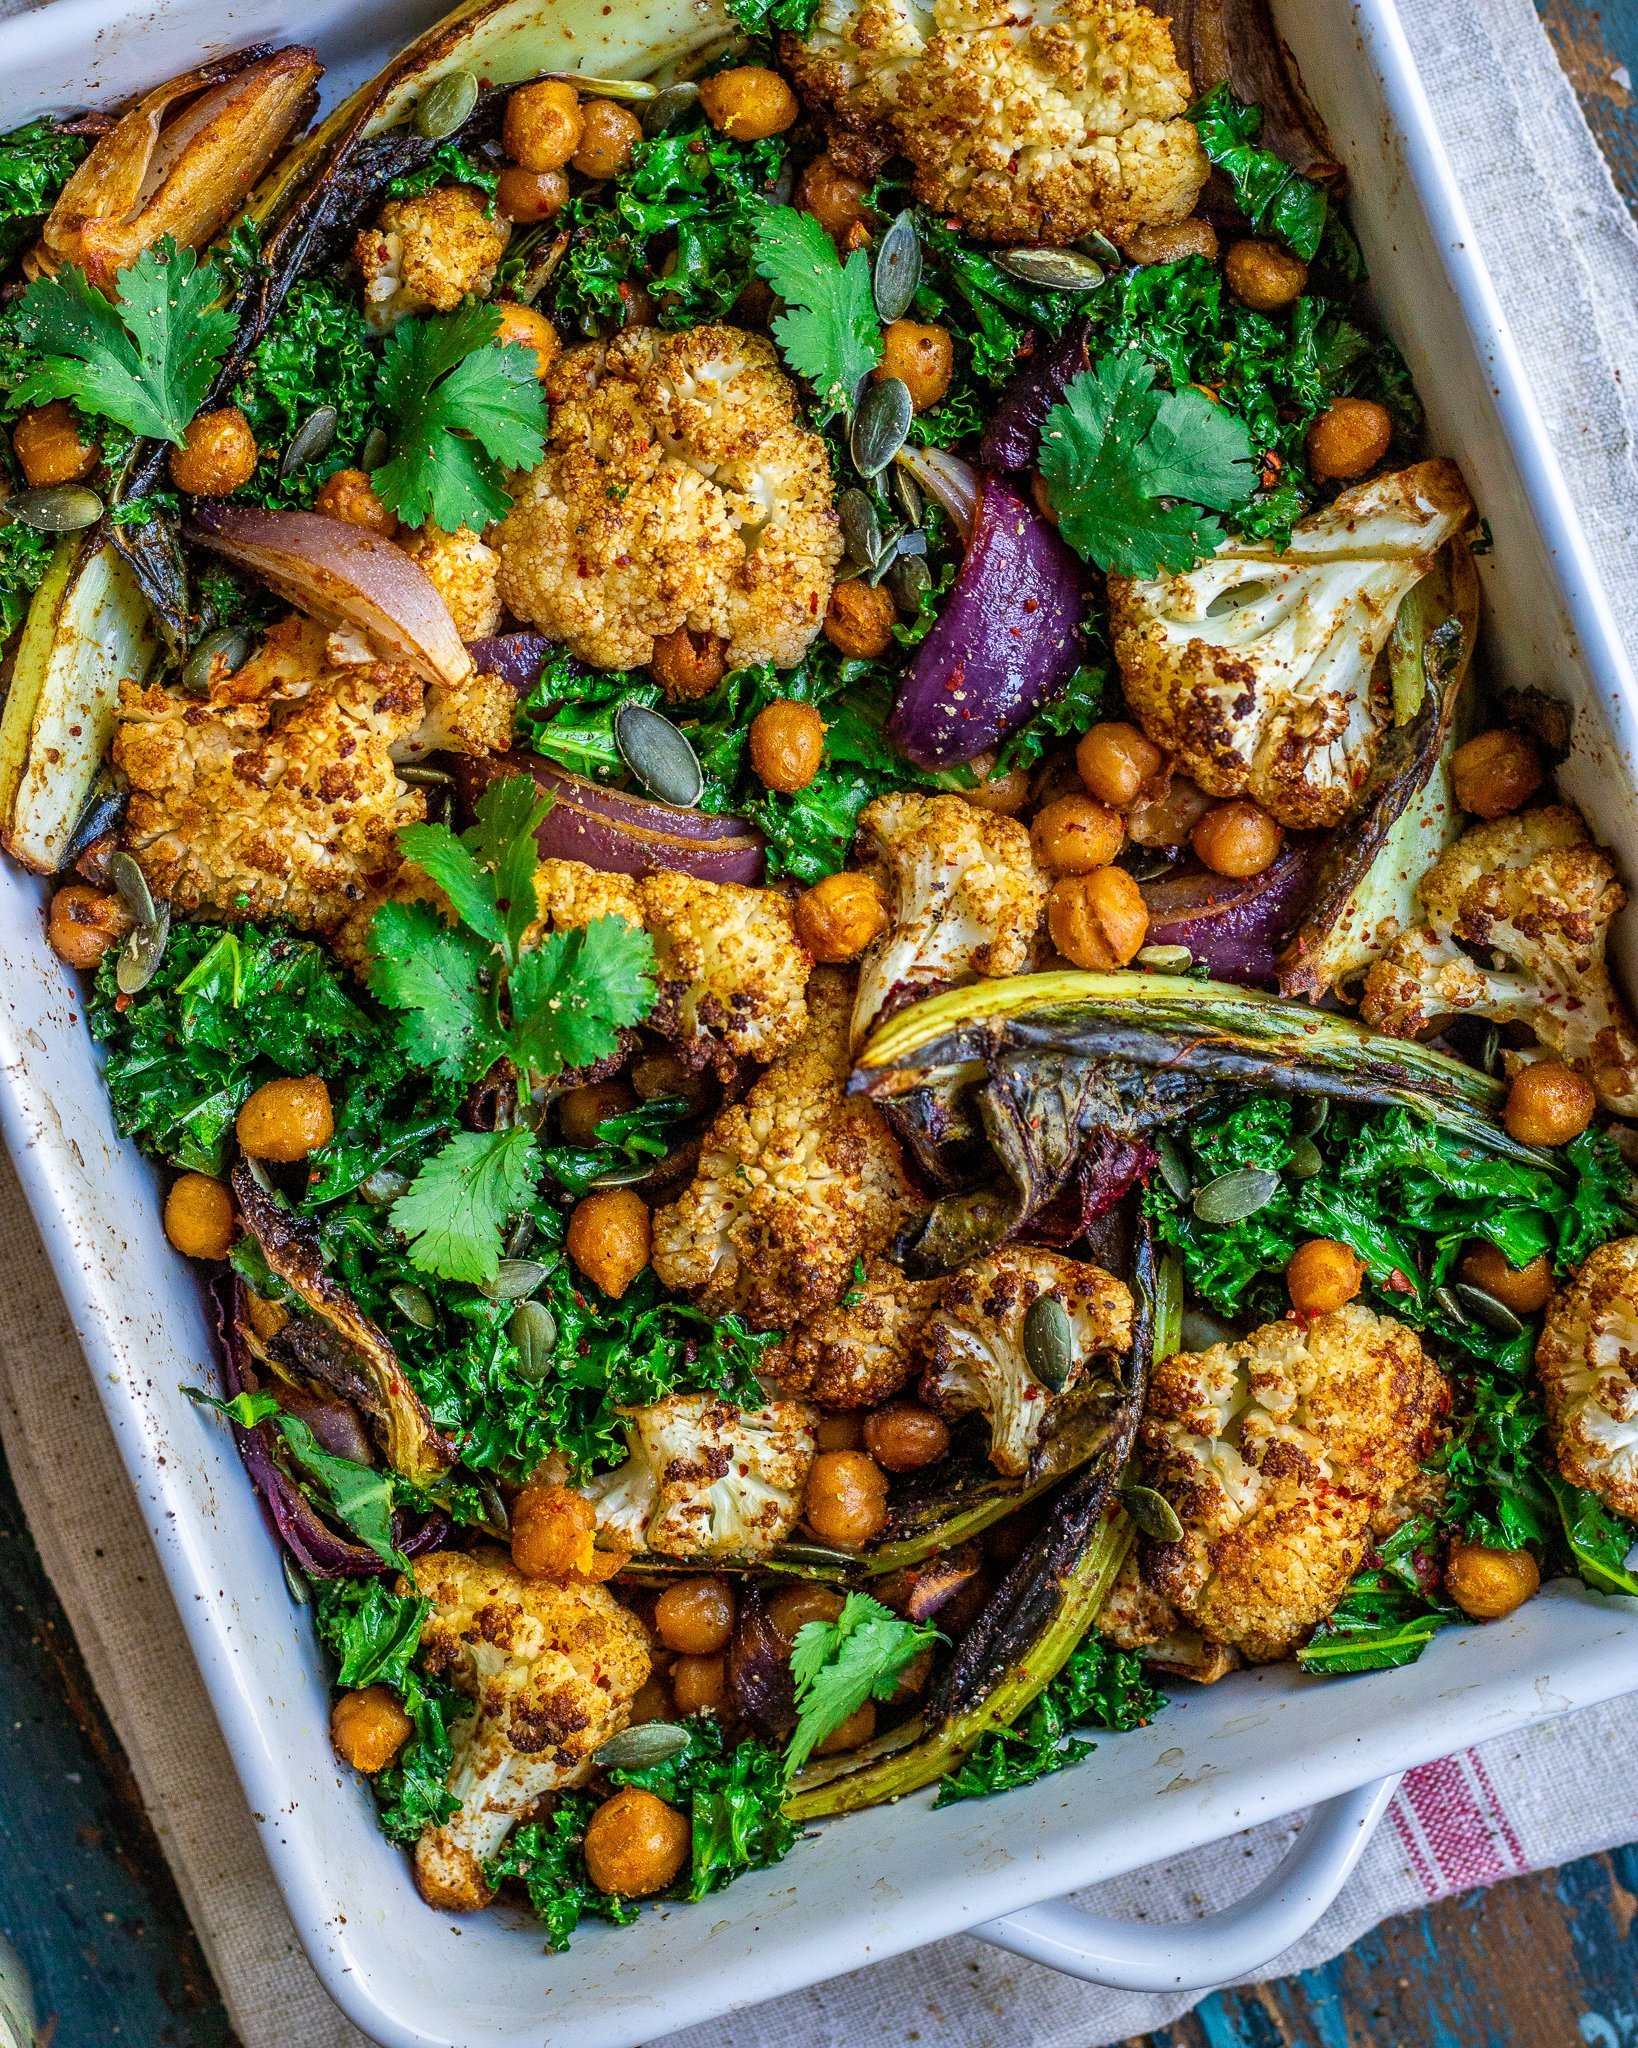 Roasted Cauliflower & Chickpea Tray Bake